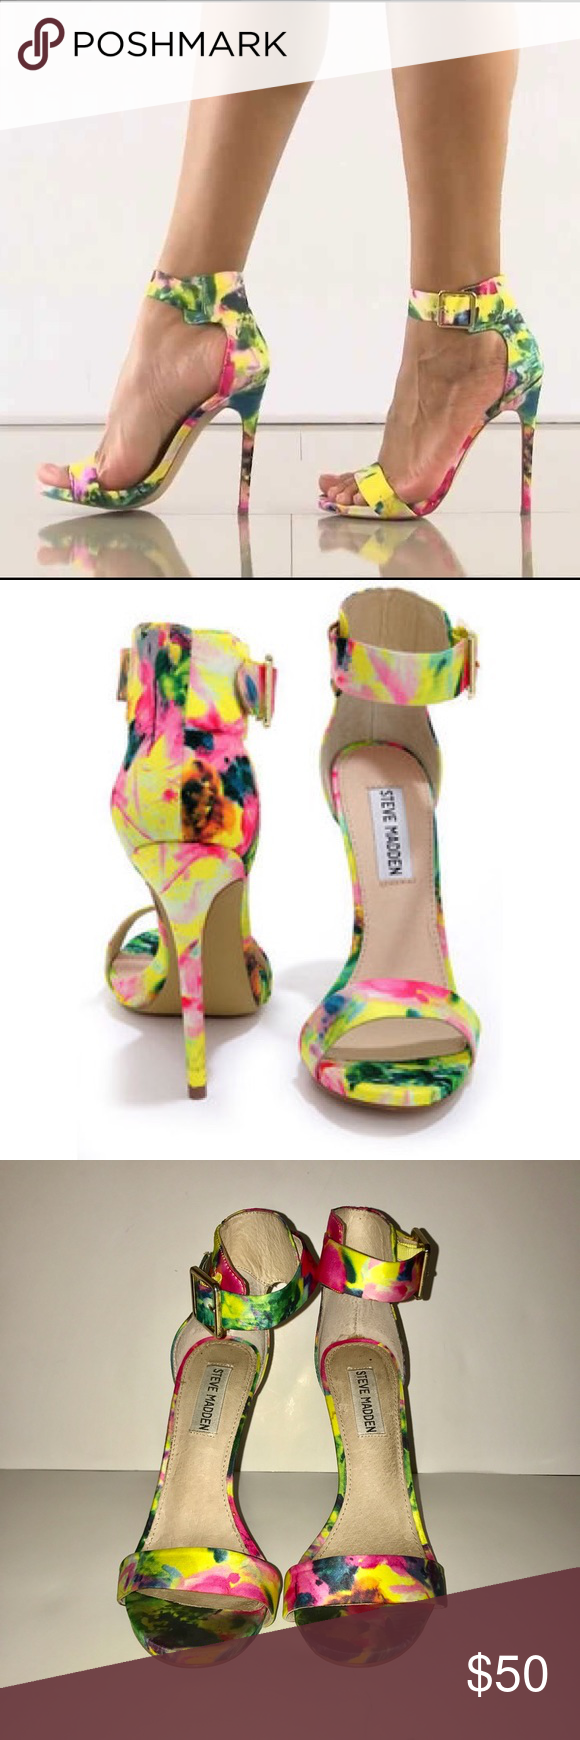 52605136ecf Steve Madden multi color floral heels Amazing condition only worn a few  times and get compliments